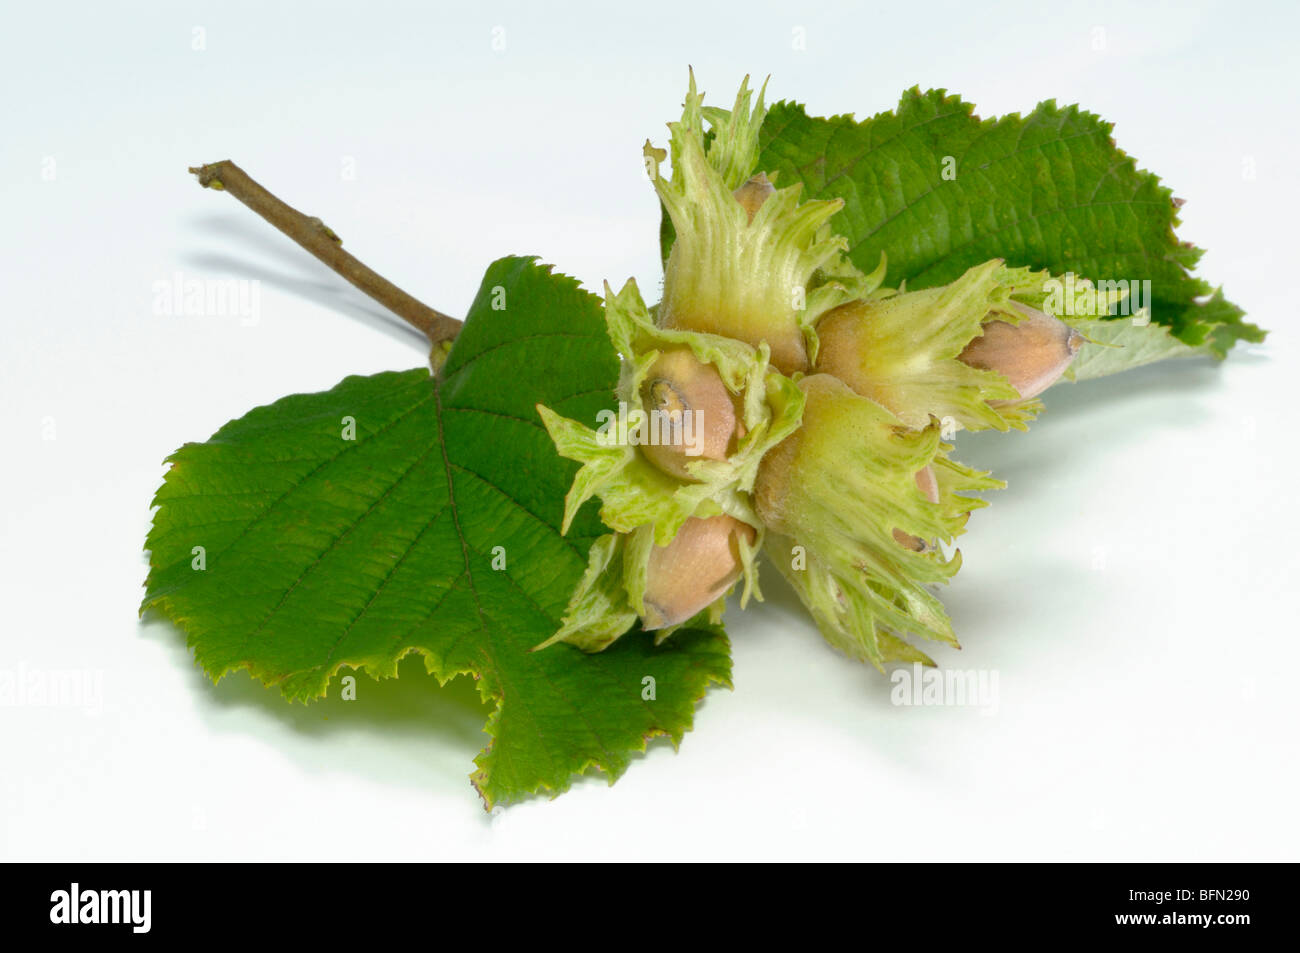 Common Hazel (Corylus avellana), twig with nuts and leaves, studio picture. - Stock Image